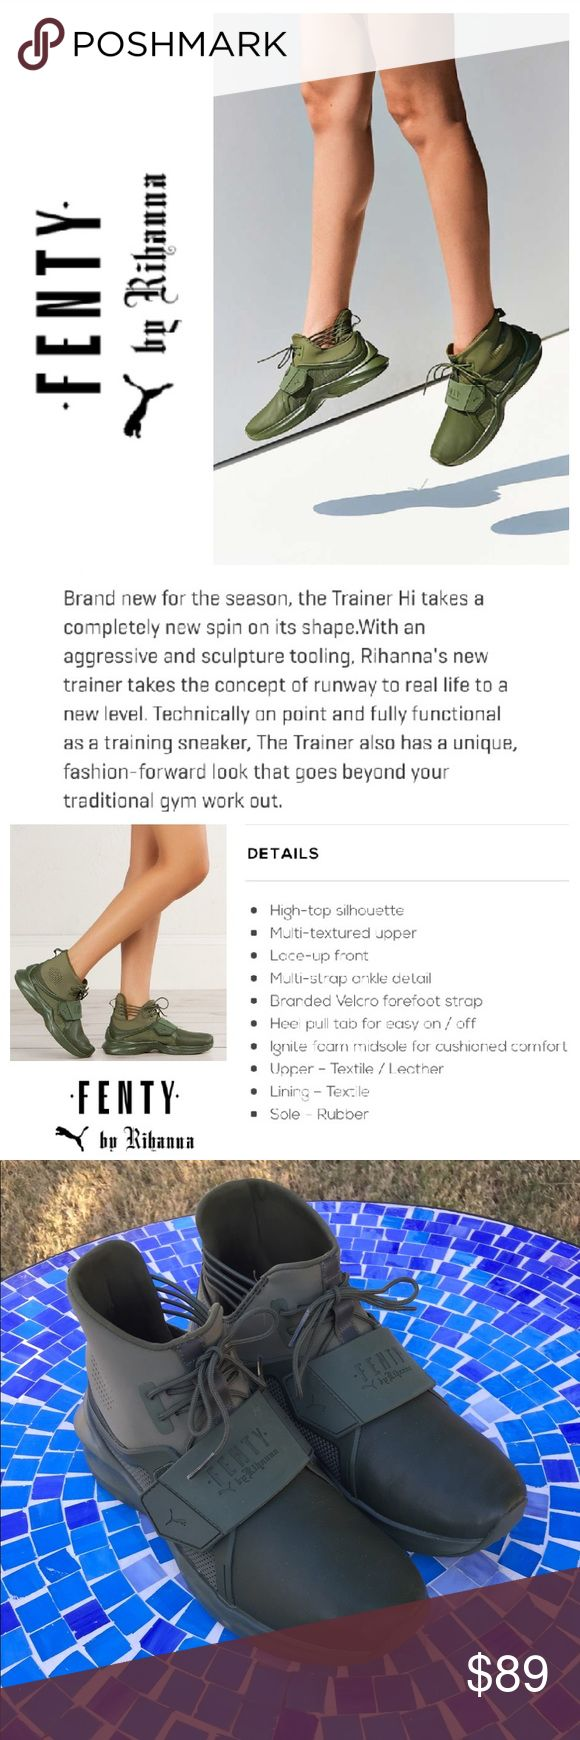 GREAT SHAPE!  PUMA Fenty Trainer high top sneakers Fabulous Puma Fenty by Rihanna trainers are perfectly on-trend & available in a unique, yet versatile shade of 'Cypress' to add a modern touch to all your activewear!  Made from butter-soft leather & high-end materials to create a fashion-forward shoe that may become your favs!  Size is 7.  Gently worn, with barely any wear.  In excellent condition!  Retail at $190!  No trades please. Puma Shoes Sneakers